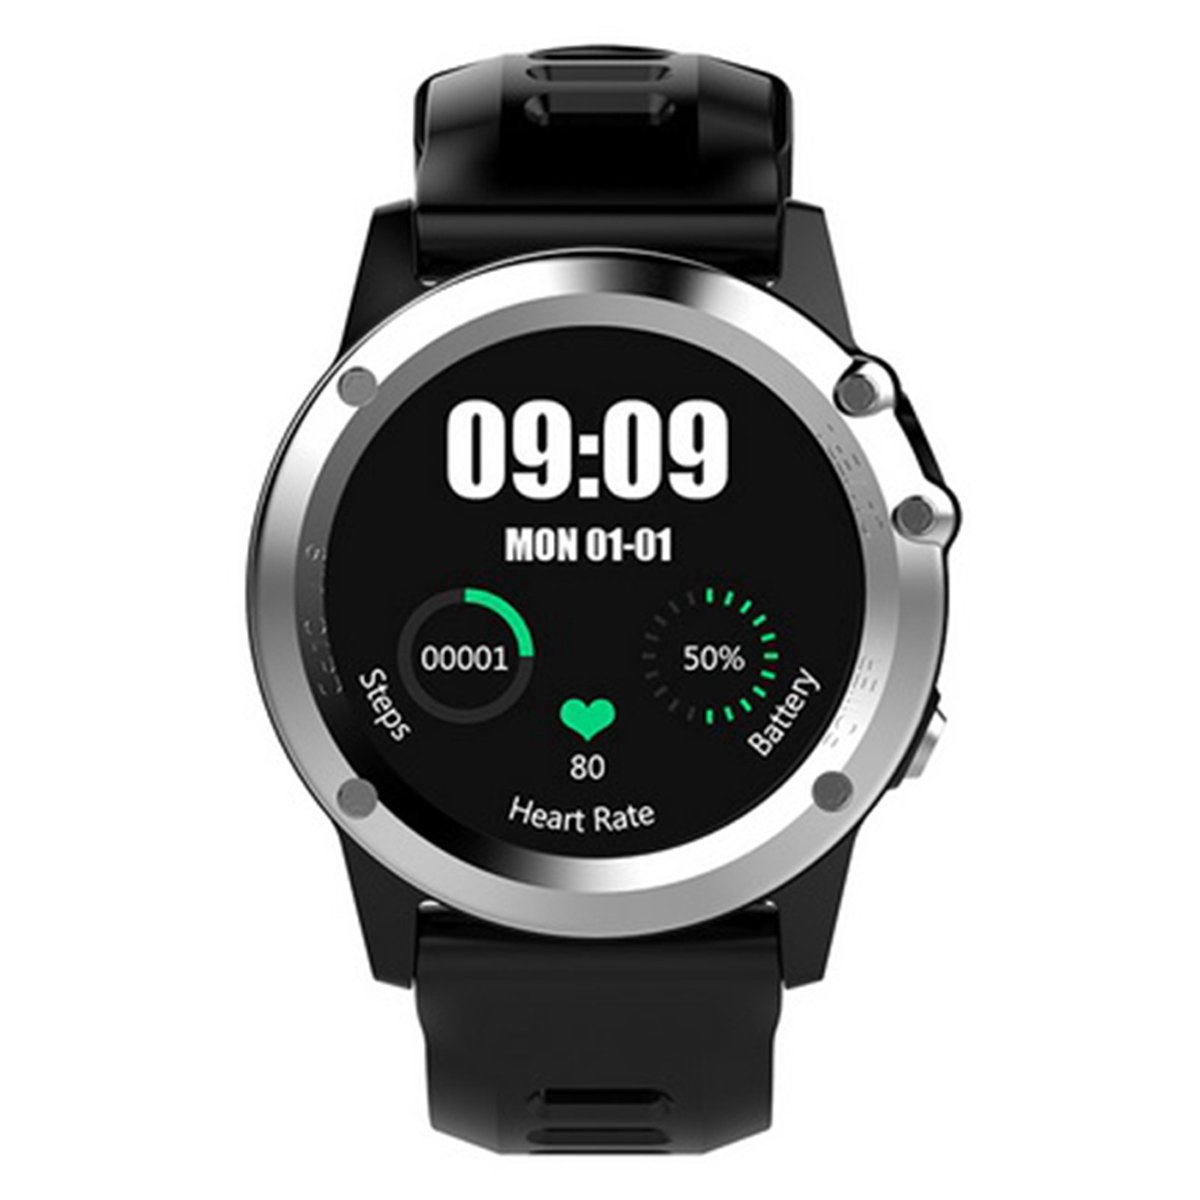 Bluetooth GPS Fitness Activity Tracker for IP68 Smartwatch with Heart Rate Sleep Monitor with 512MB and 4GB - Silver